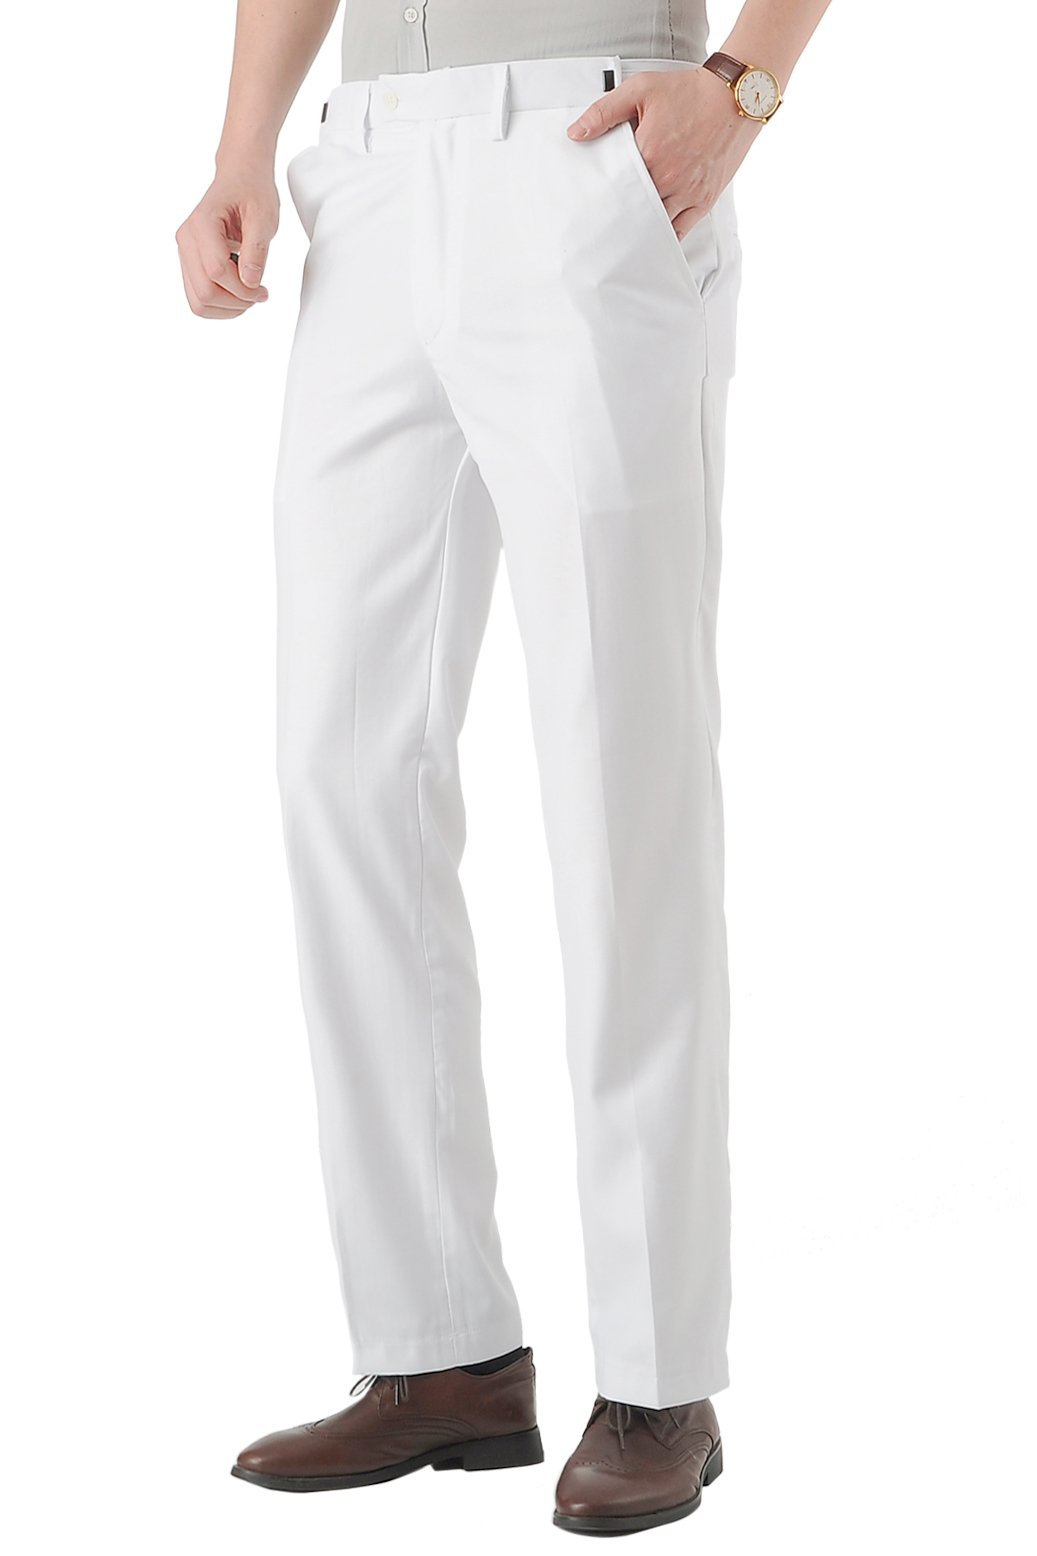 CMDC Men's Banquet Wedding Groom Dress Suit Pants D274£¨34W-32L White